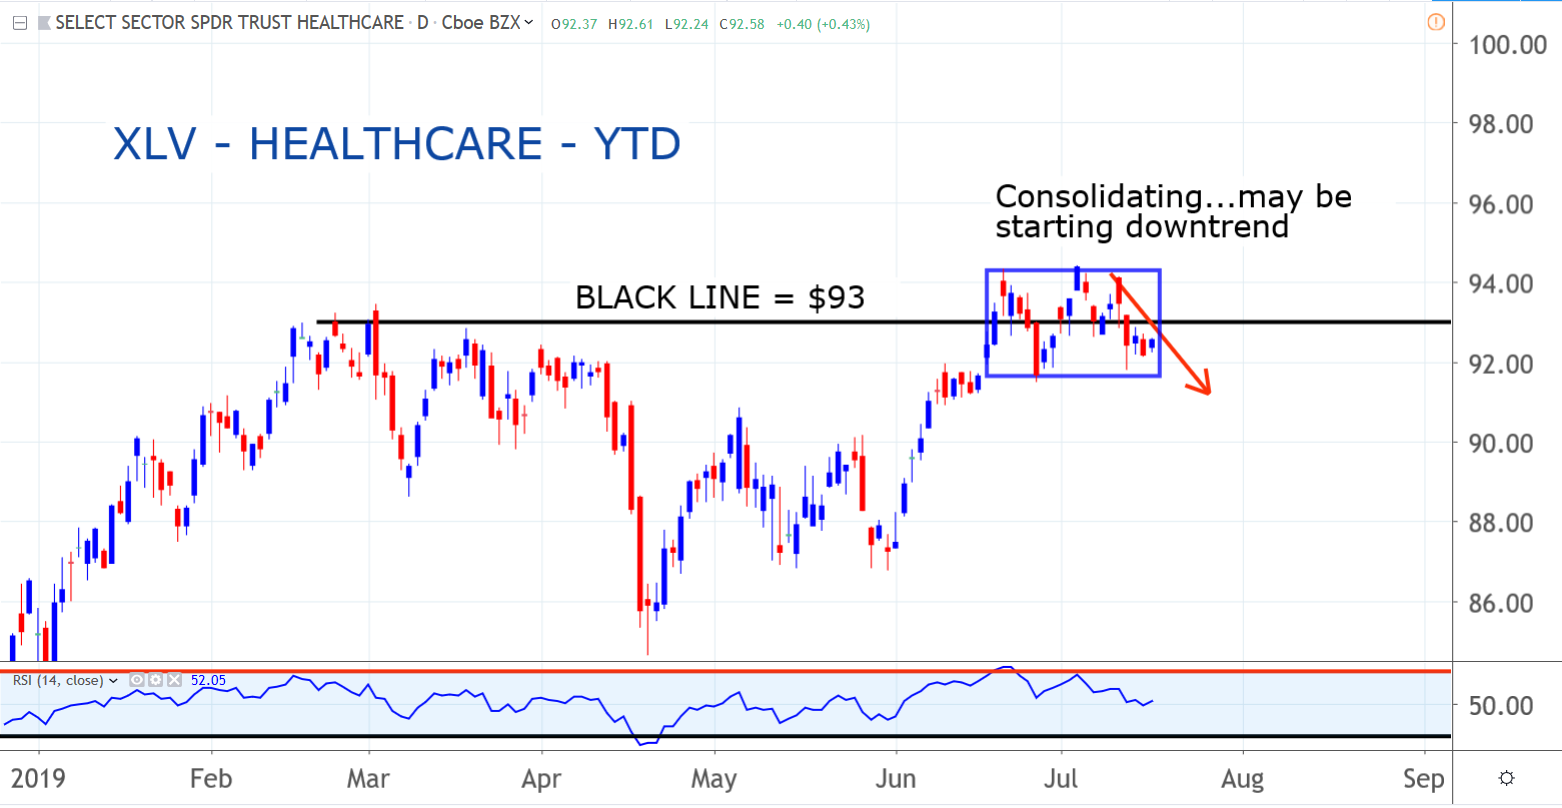 Health Care Sector SPDR (XLV)